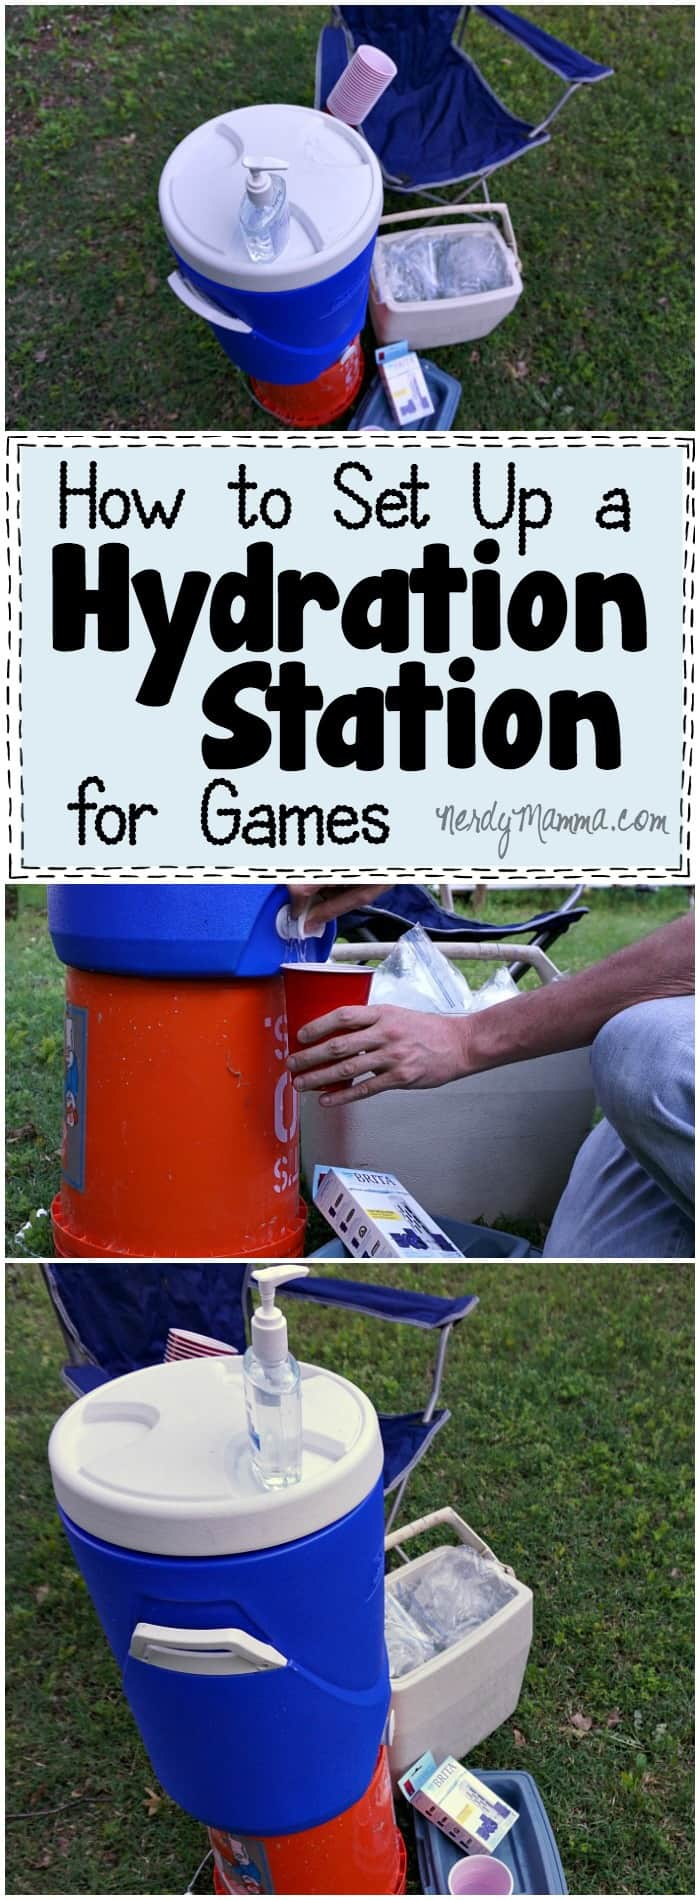 I love these tips on how to set up a hydration station for the kids at their games--I feel like the water boy, because I'm always assigned that! LOL! But this will make it so much more fun!